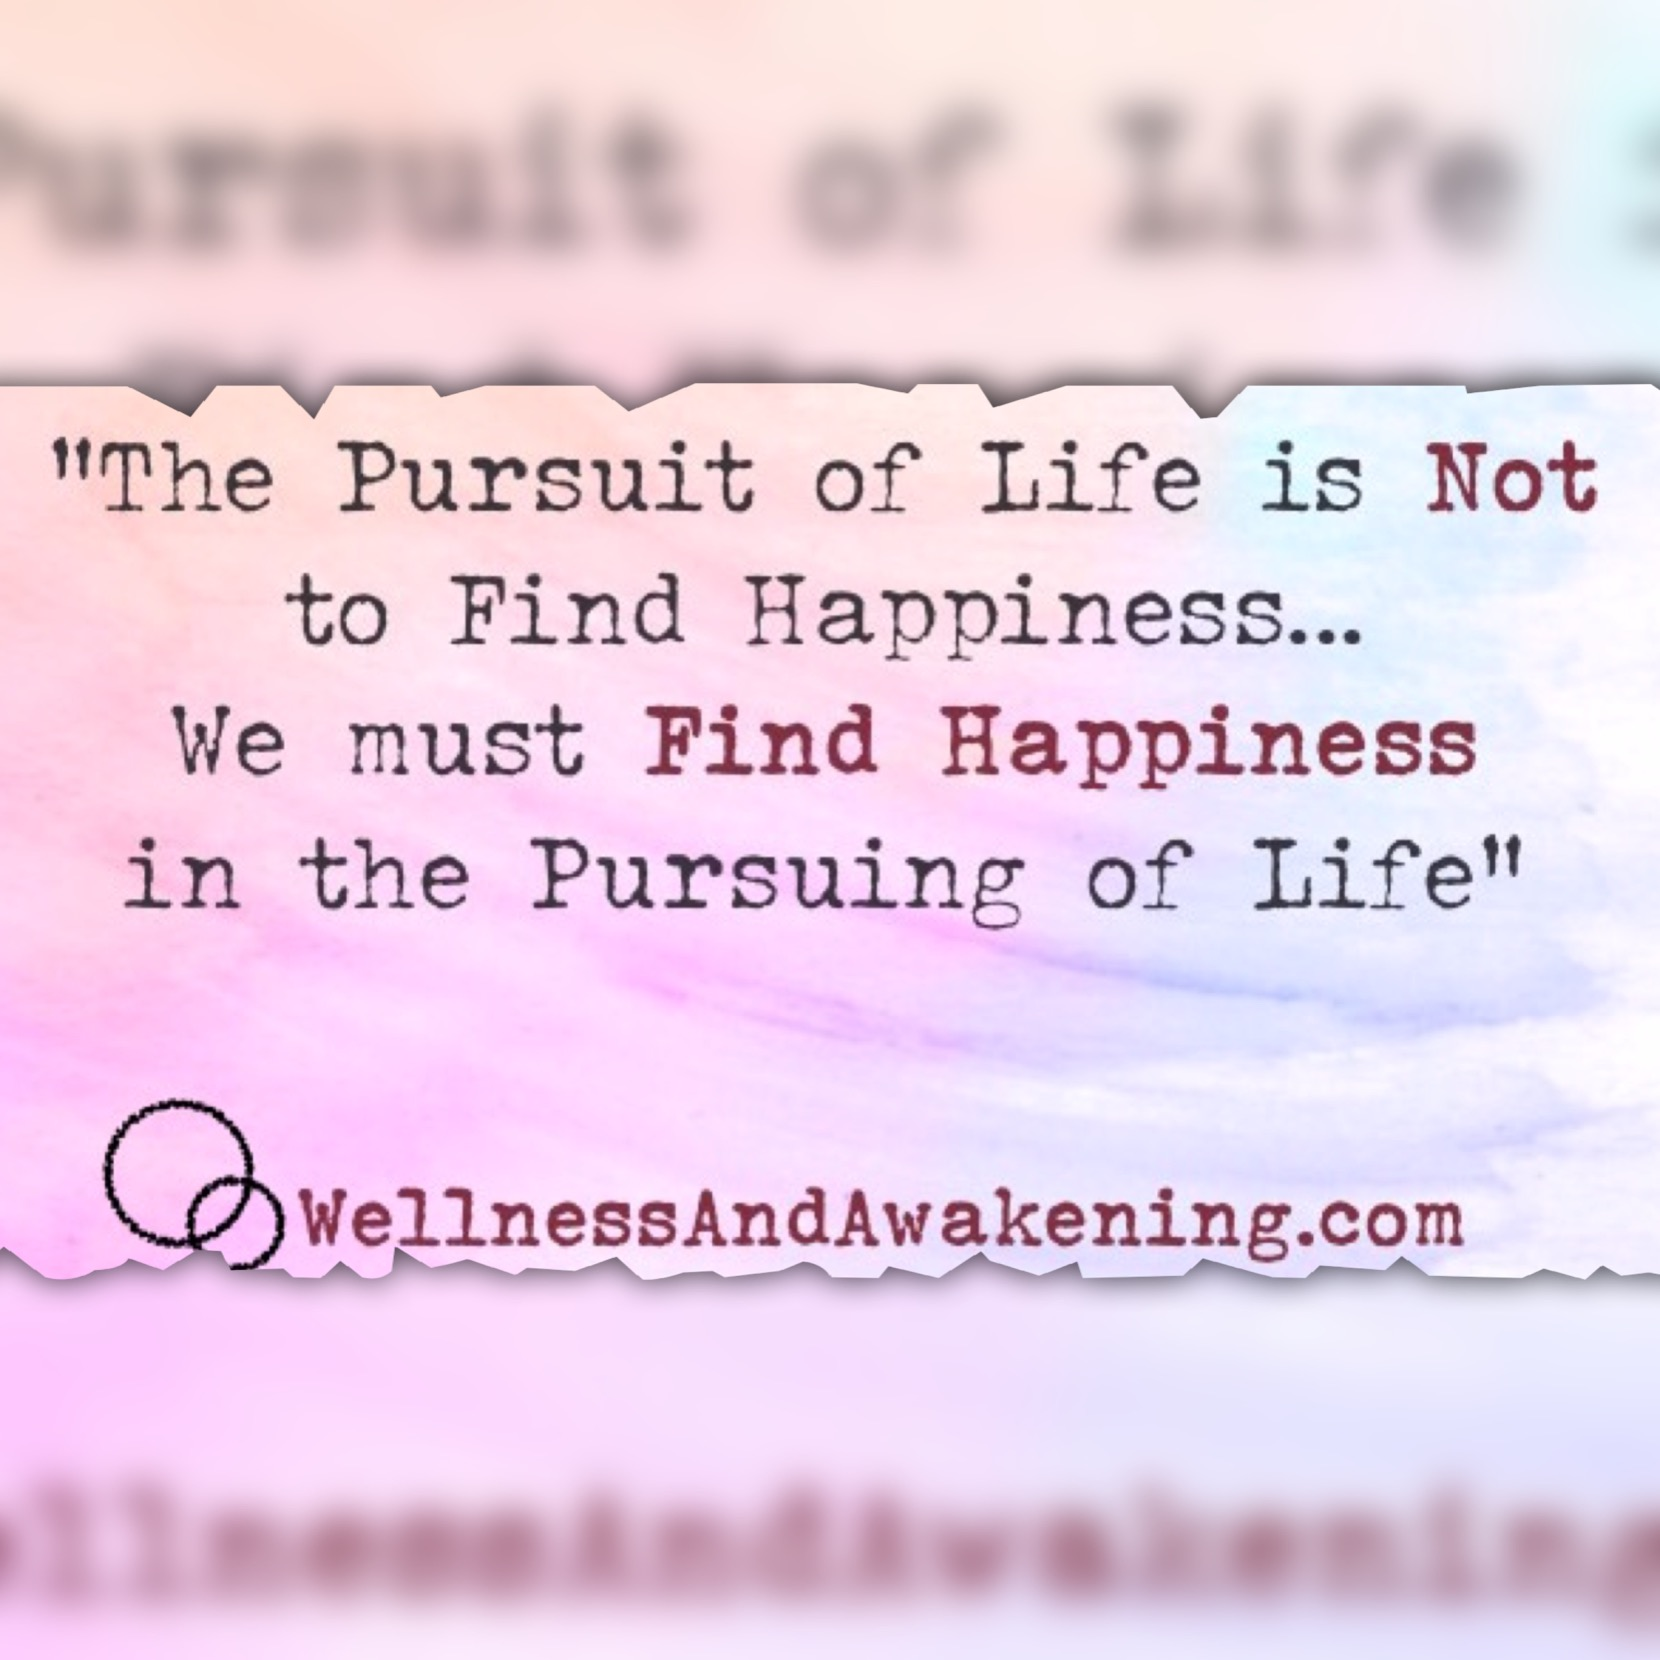 Happiness in pursuing life